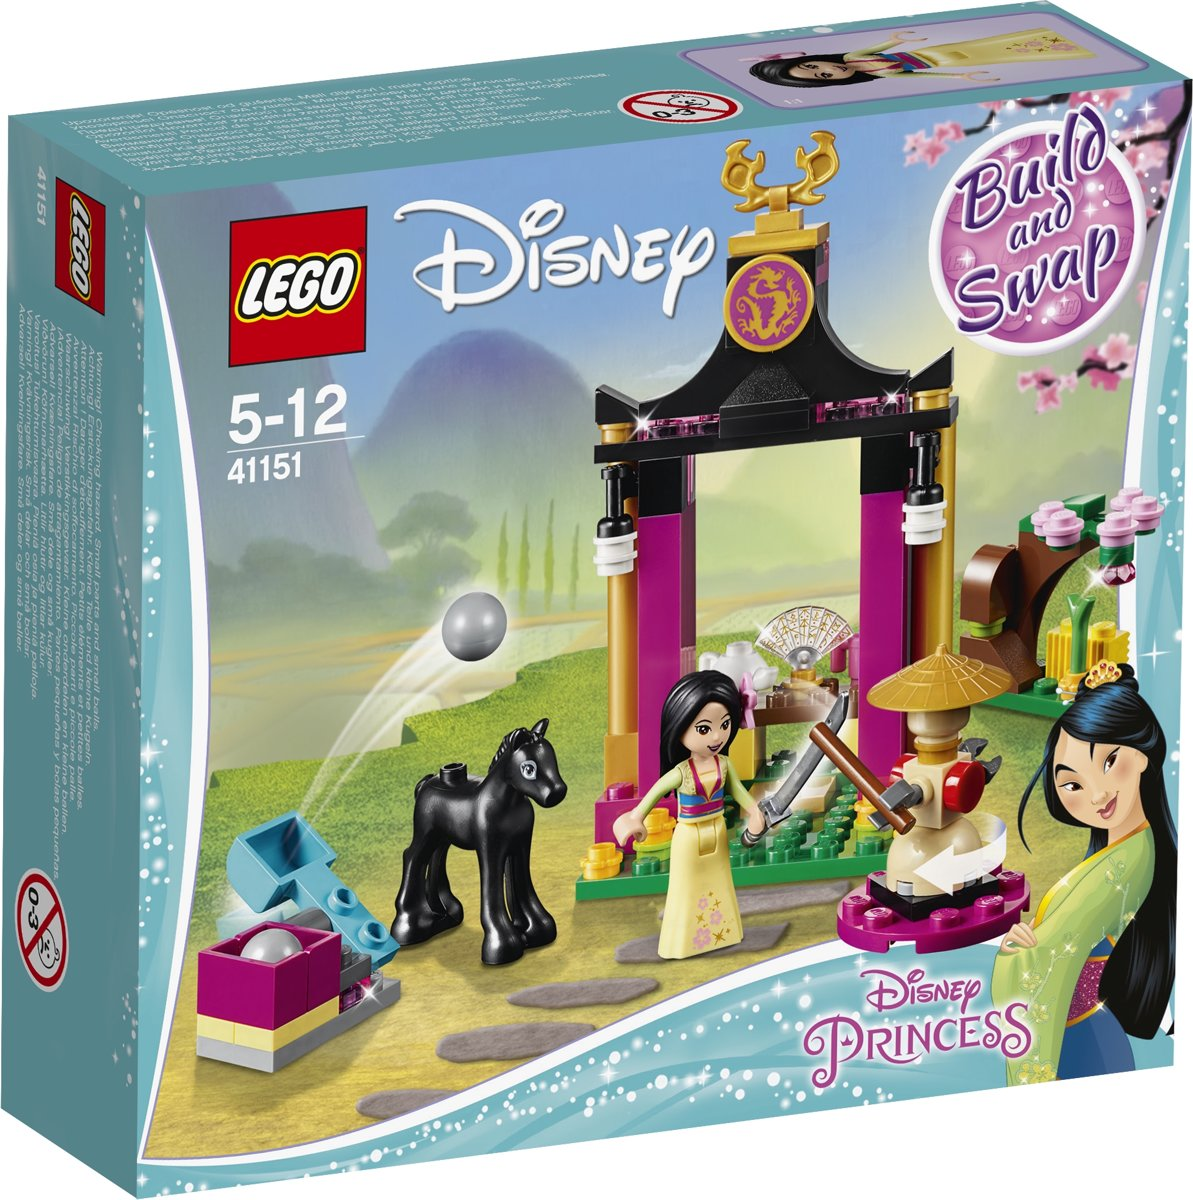 LEGO Disney Princess Mulans Trainingsdag - 41151